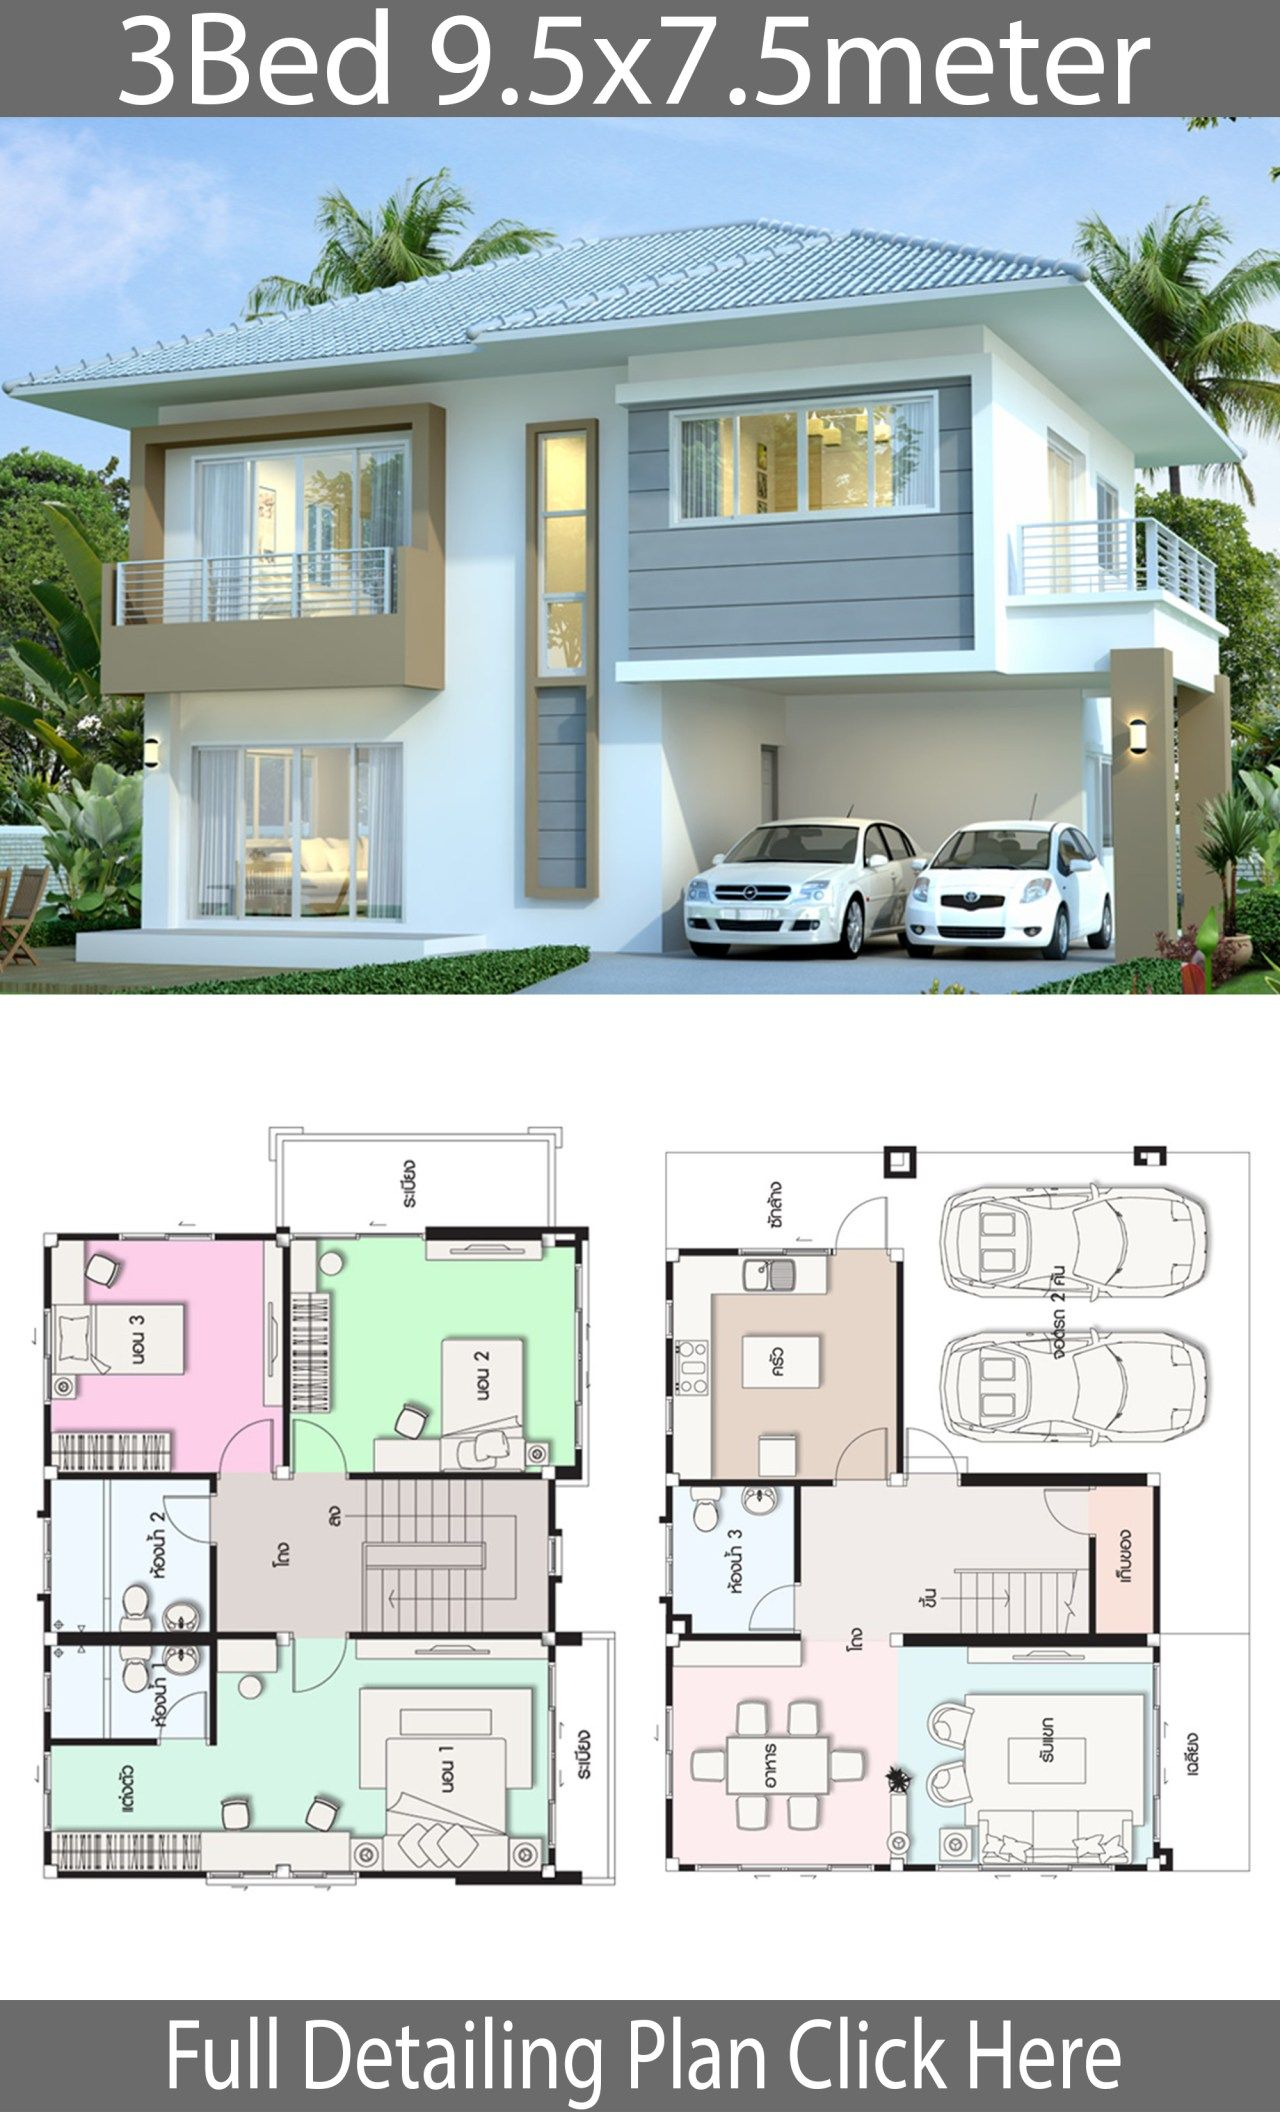 House Design Plan 9 5x7 5m With 3 Bedrooms Home Ideas Architectural House Plans Model House Plan Home Design Plans